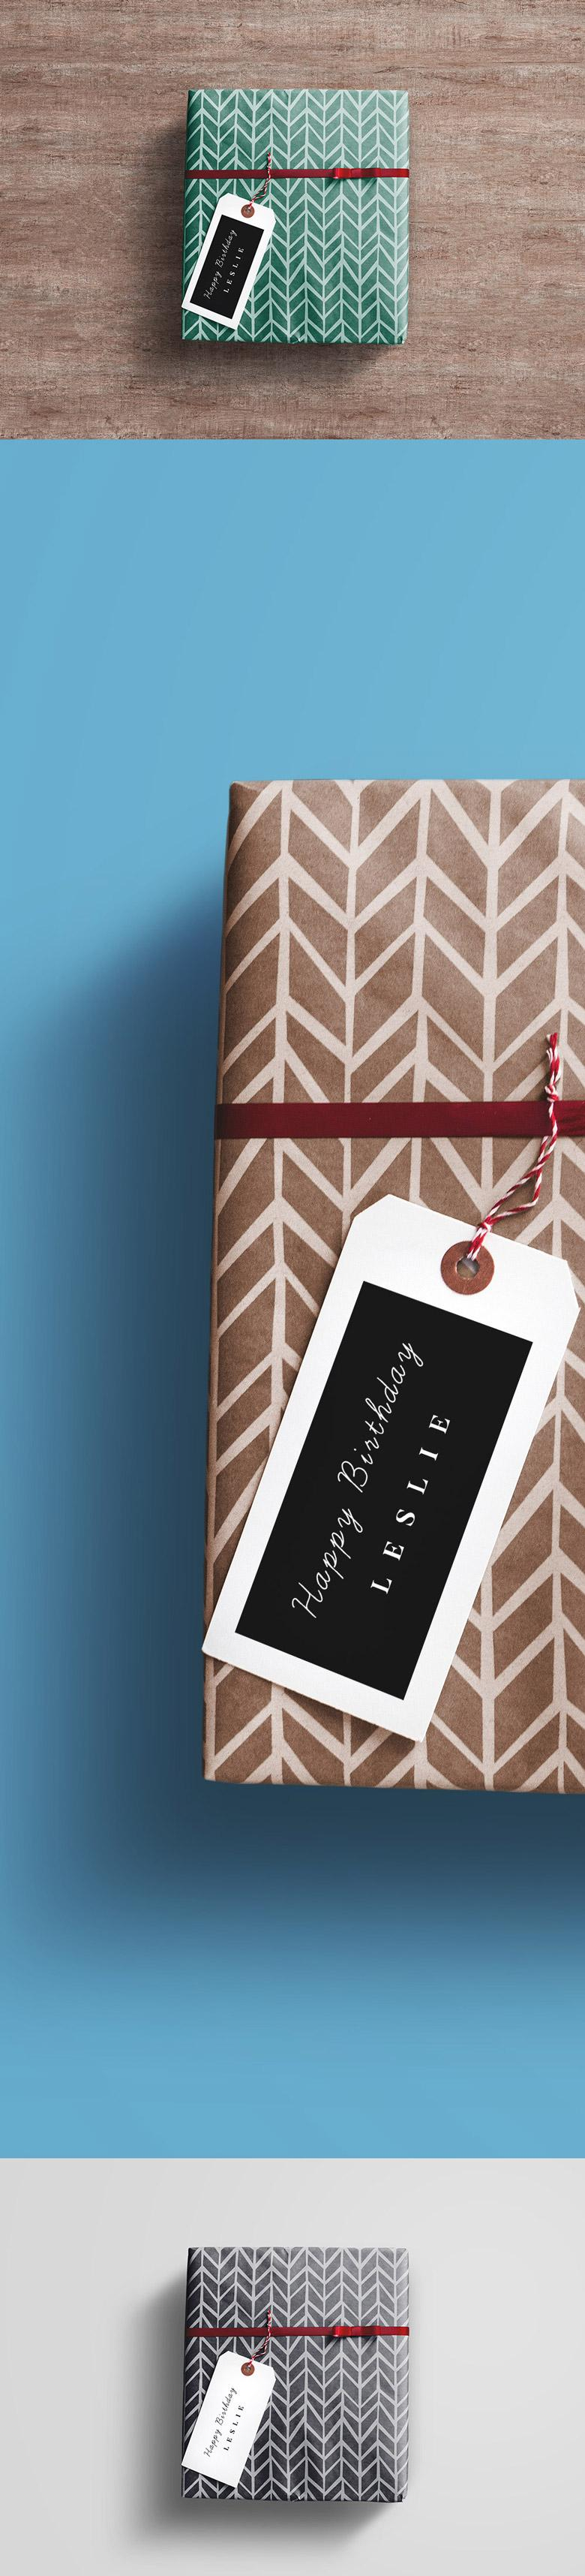 Gift Wrapped Box Mockup